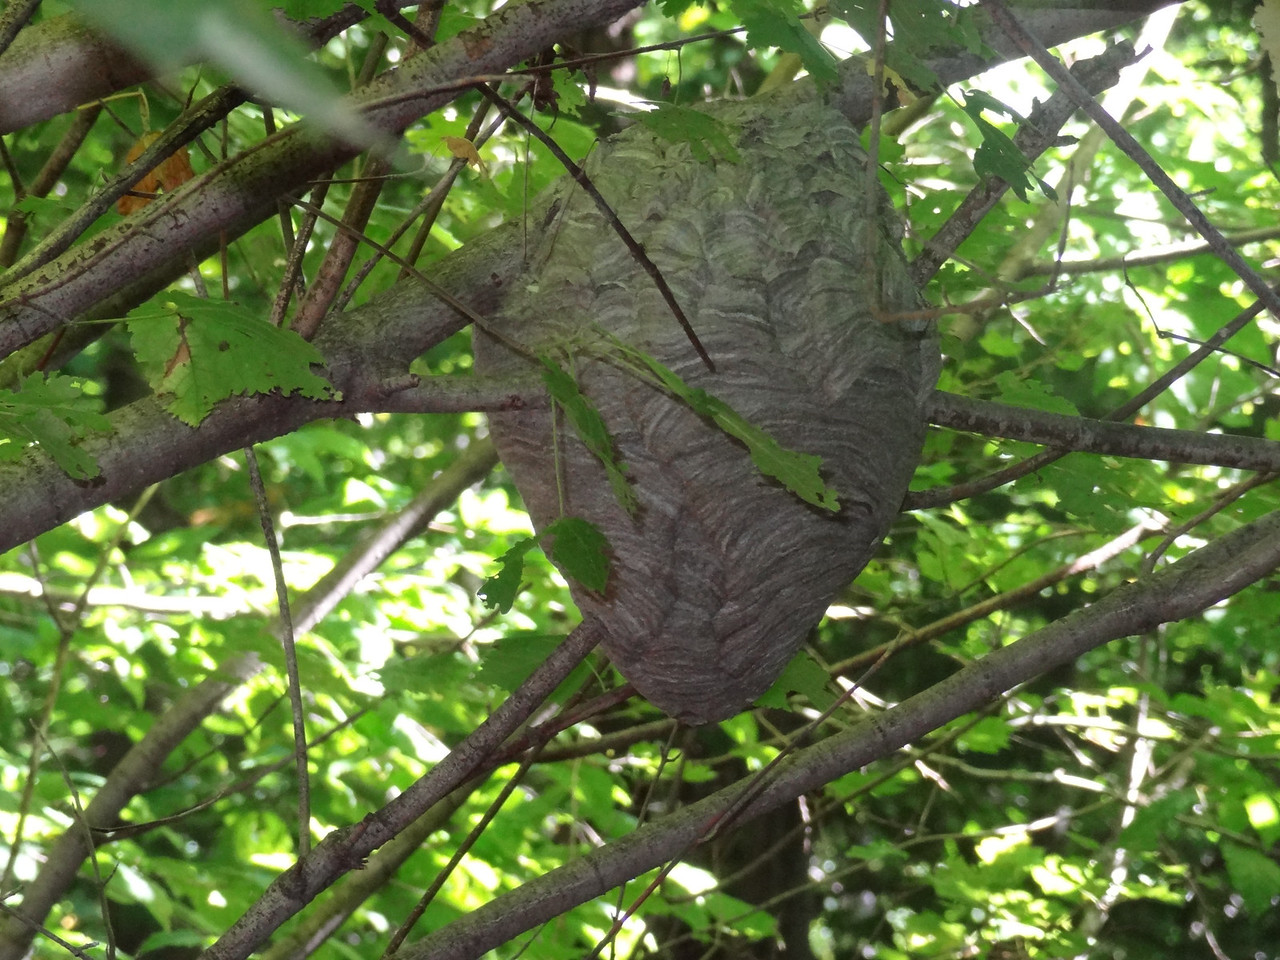 Solè saw this wasp hive and interestingly the wasps were still active at 45°F.